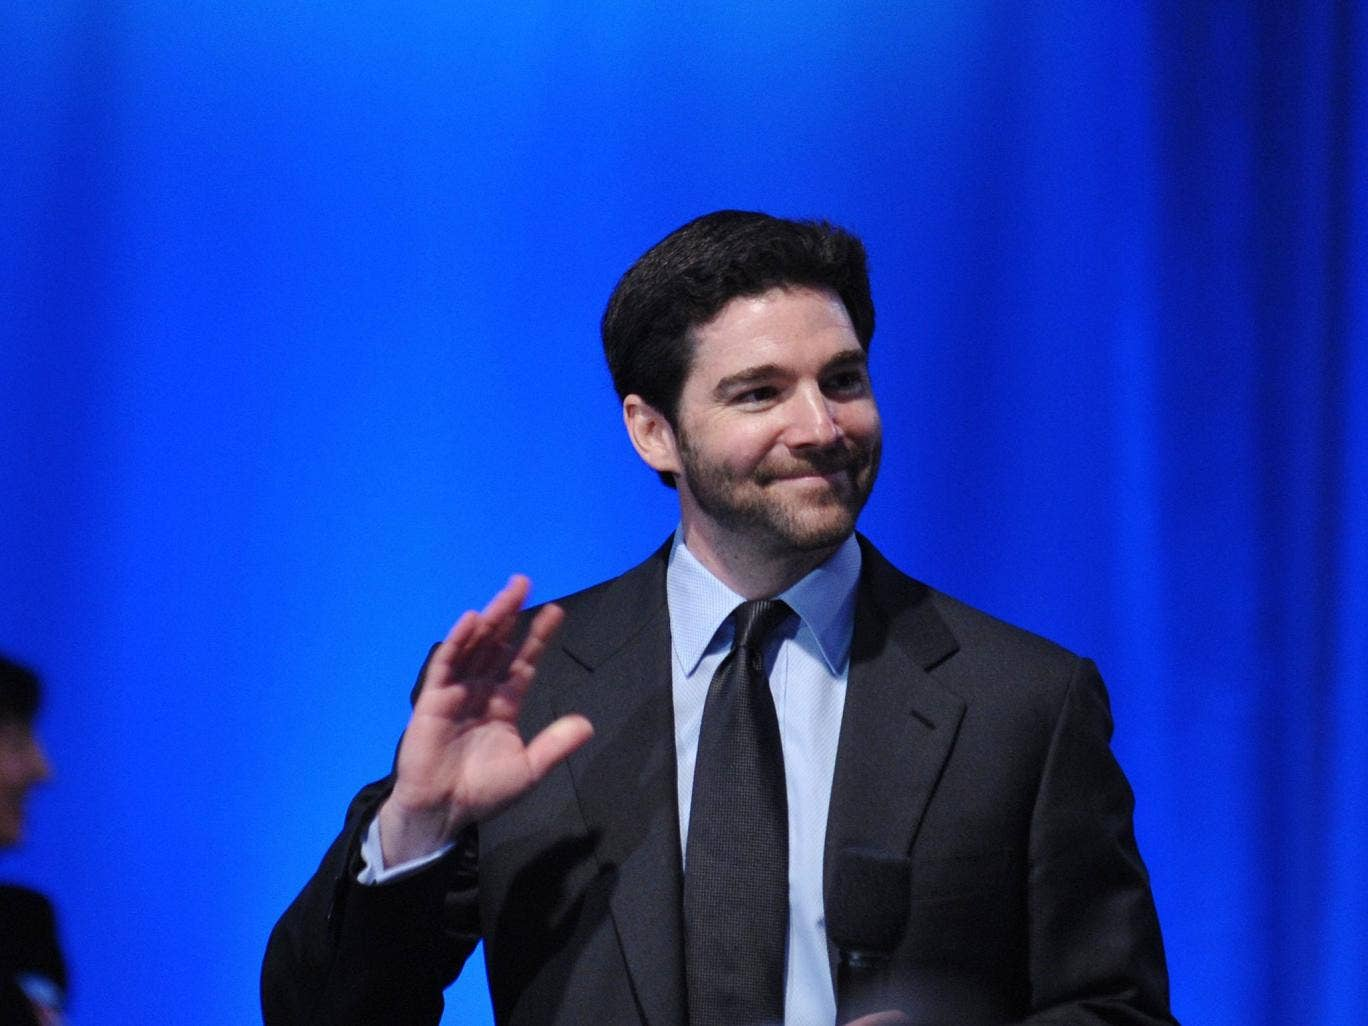 Jeff Weiner has presided over a period of sustained growth at LinkedIn since he arrived from Yahoo in 2008